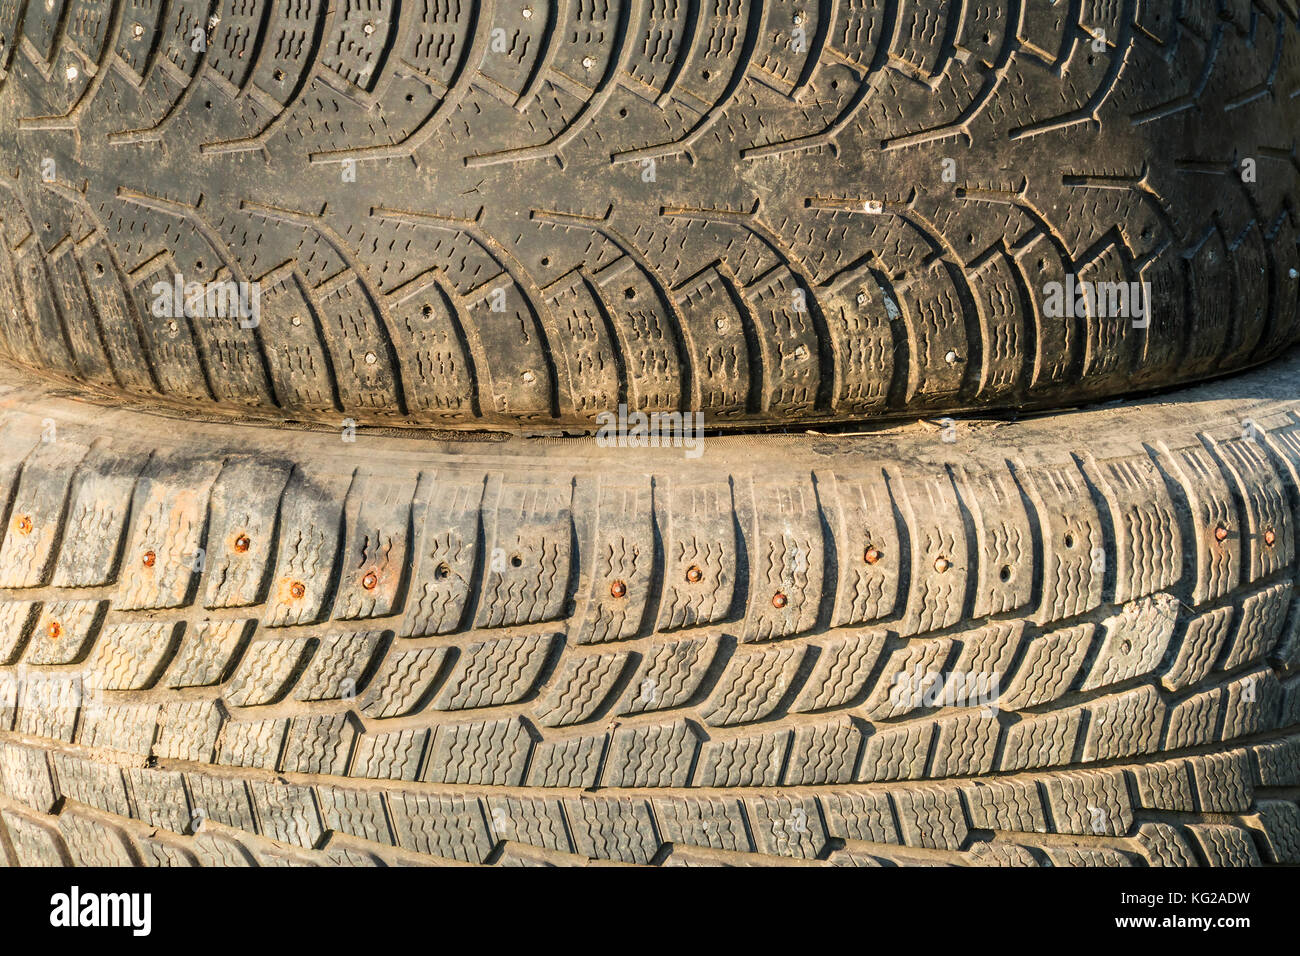 A stack of old tires with textured tread on sunlight closeup - Stock Image